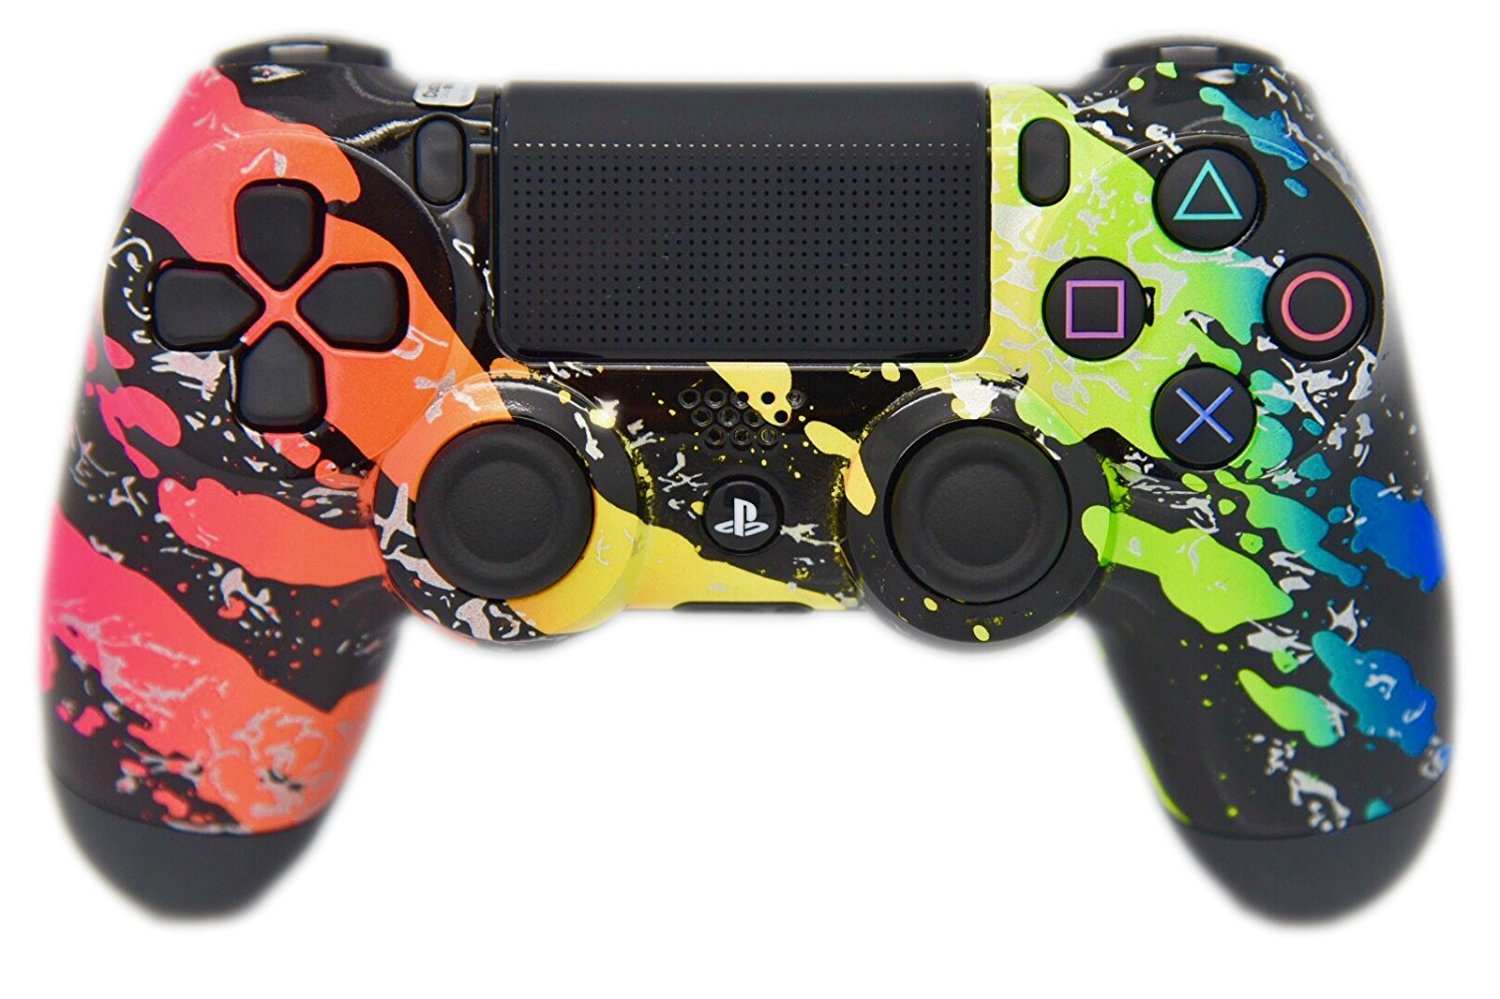 Rainbow Splatter PS4 Custom Controller, HAND PAINTED & HYDRO DIPPED, UN-MODDED